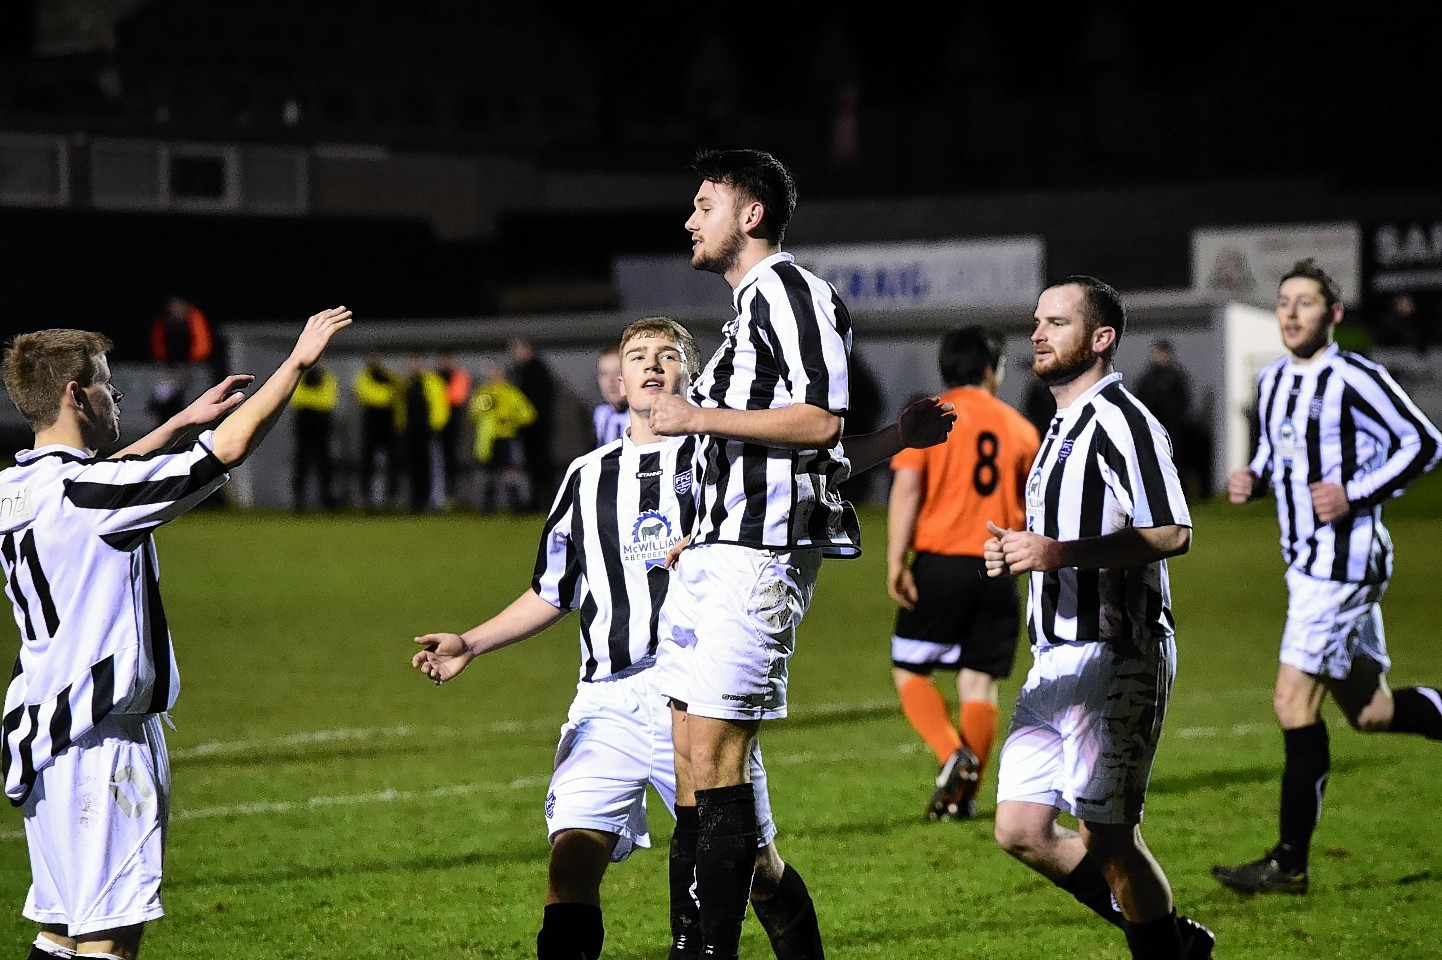 Fraserburgh's Steven Davidson celebrates finding the back of the net. Picture by Kami Thomson